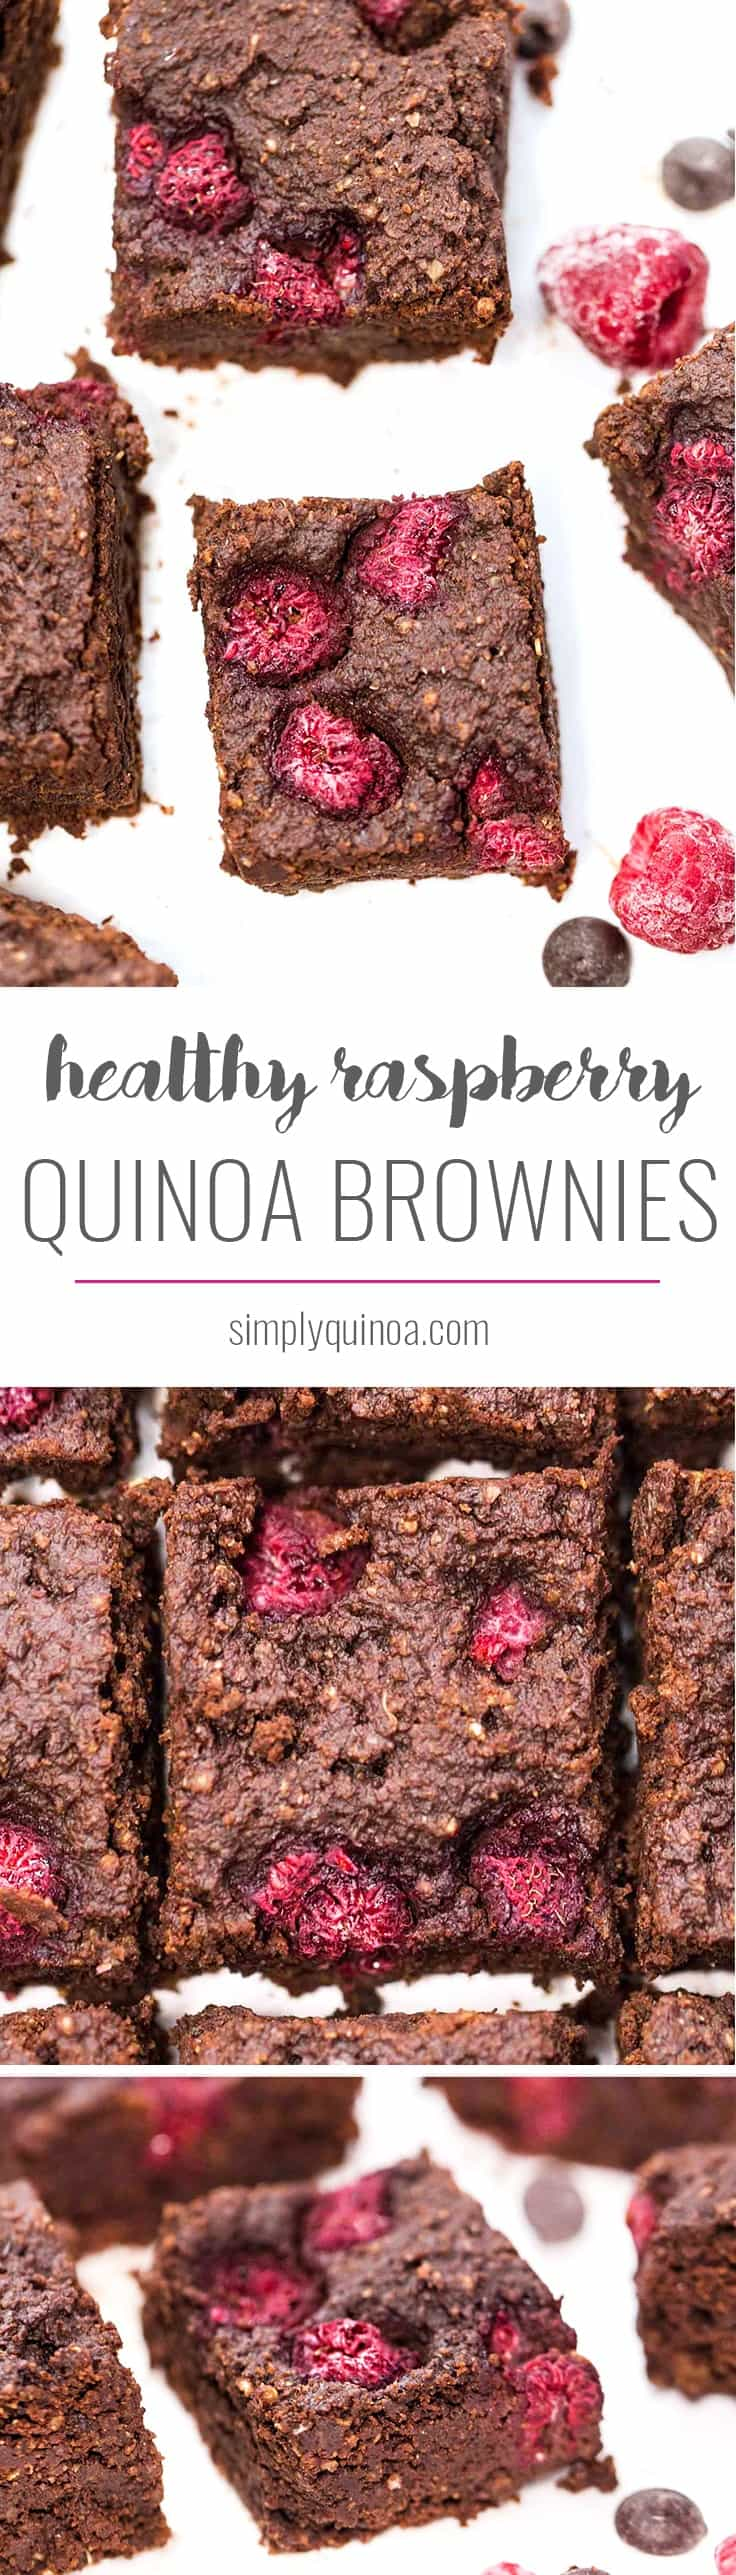 These HEALTHY raspberry quinoa brownies are naturally gluten-free and vegan, but are also packed with protein! Under 200 calories and 4.5g of protein per square!